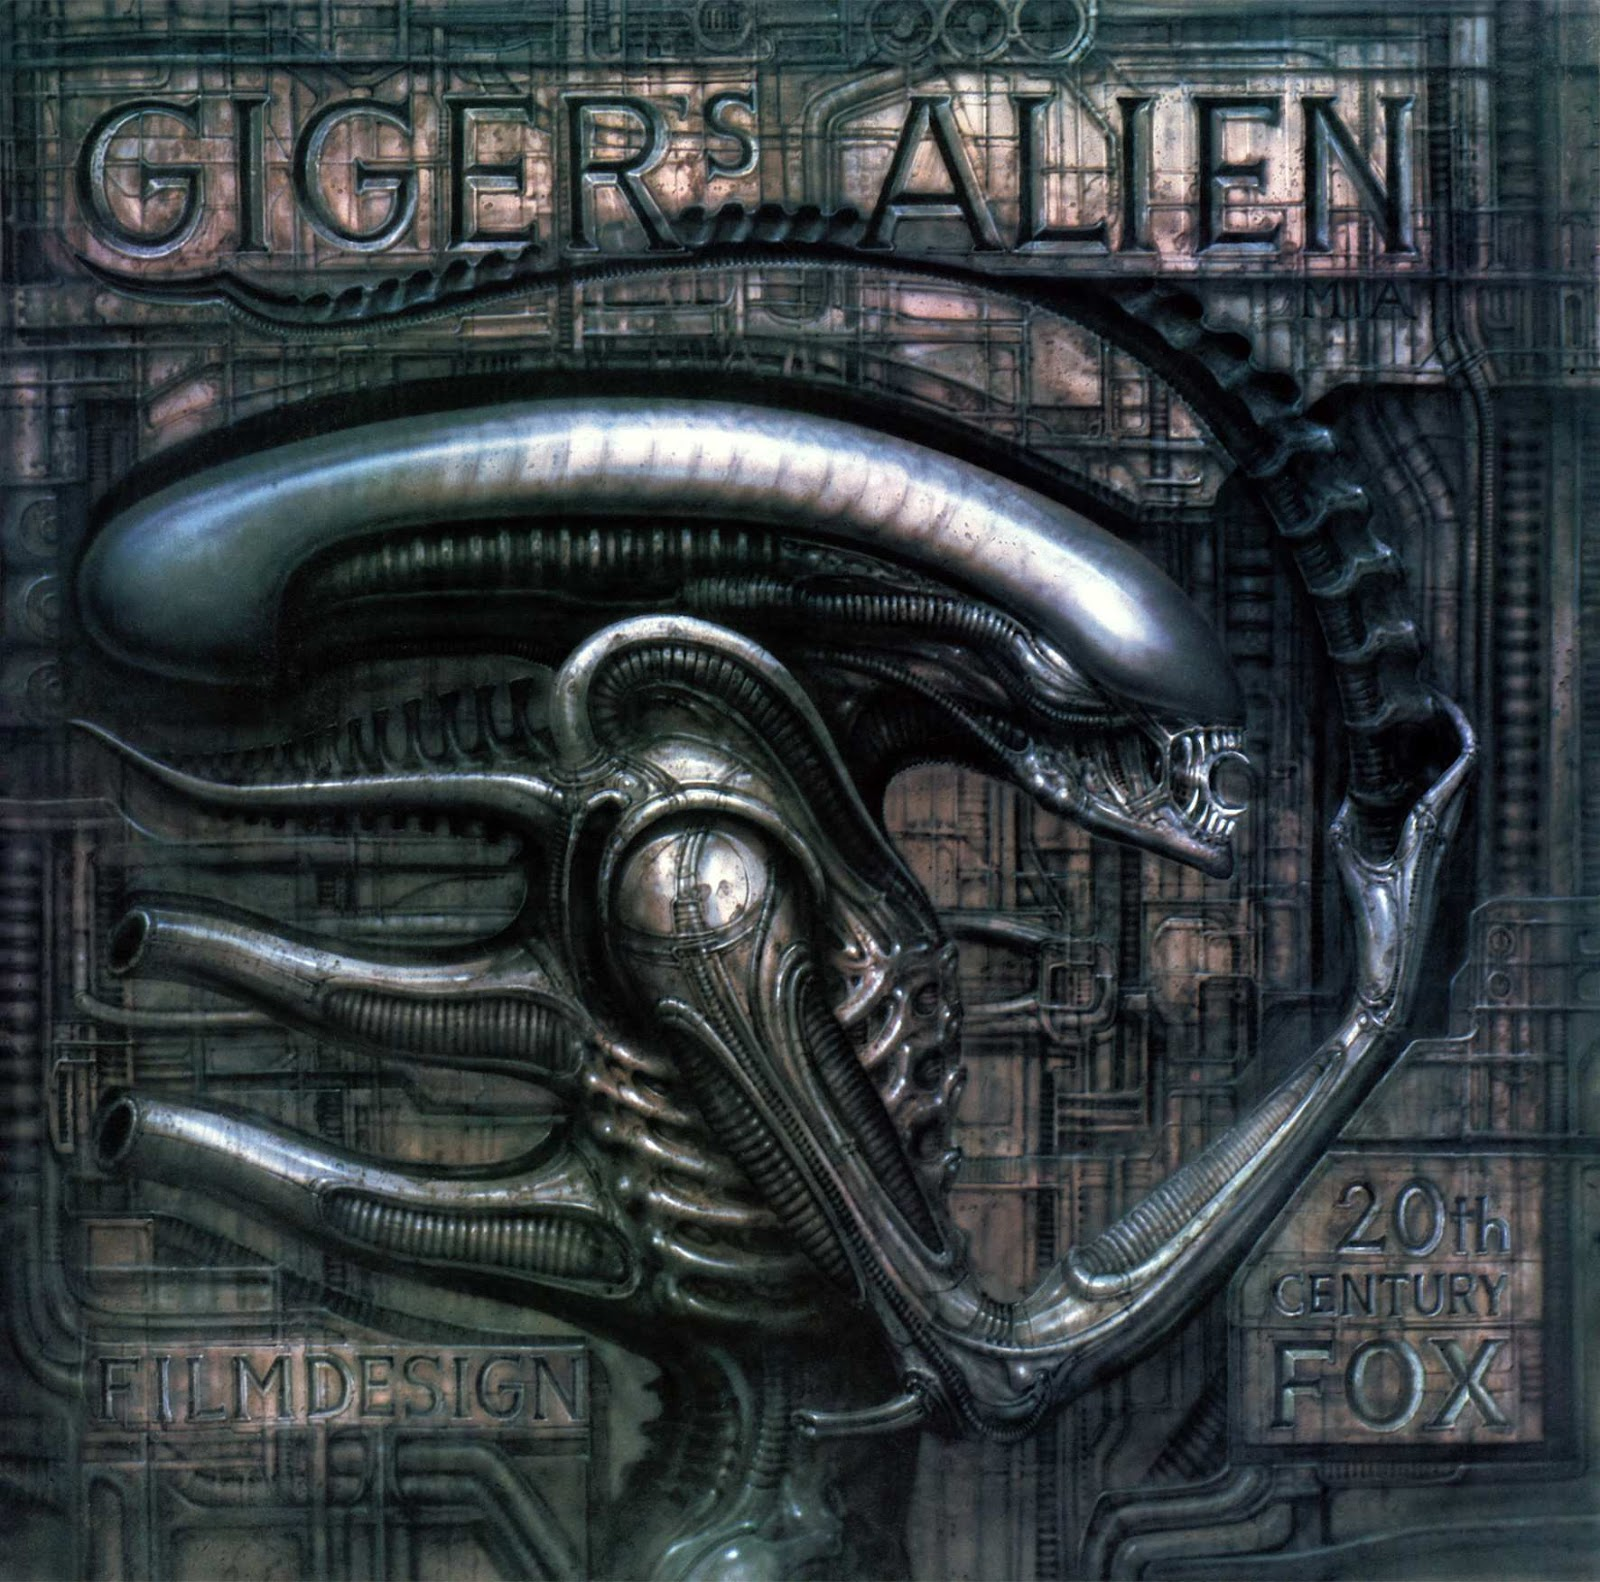 Read online Giger's Alien comic -  Issue # TPB - 1